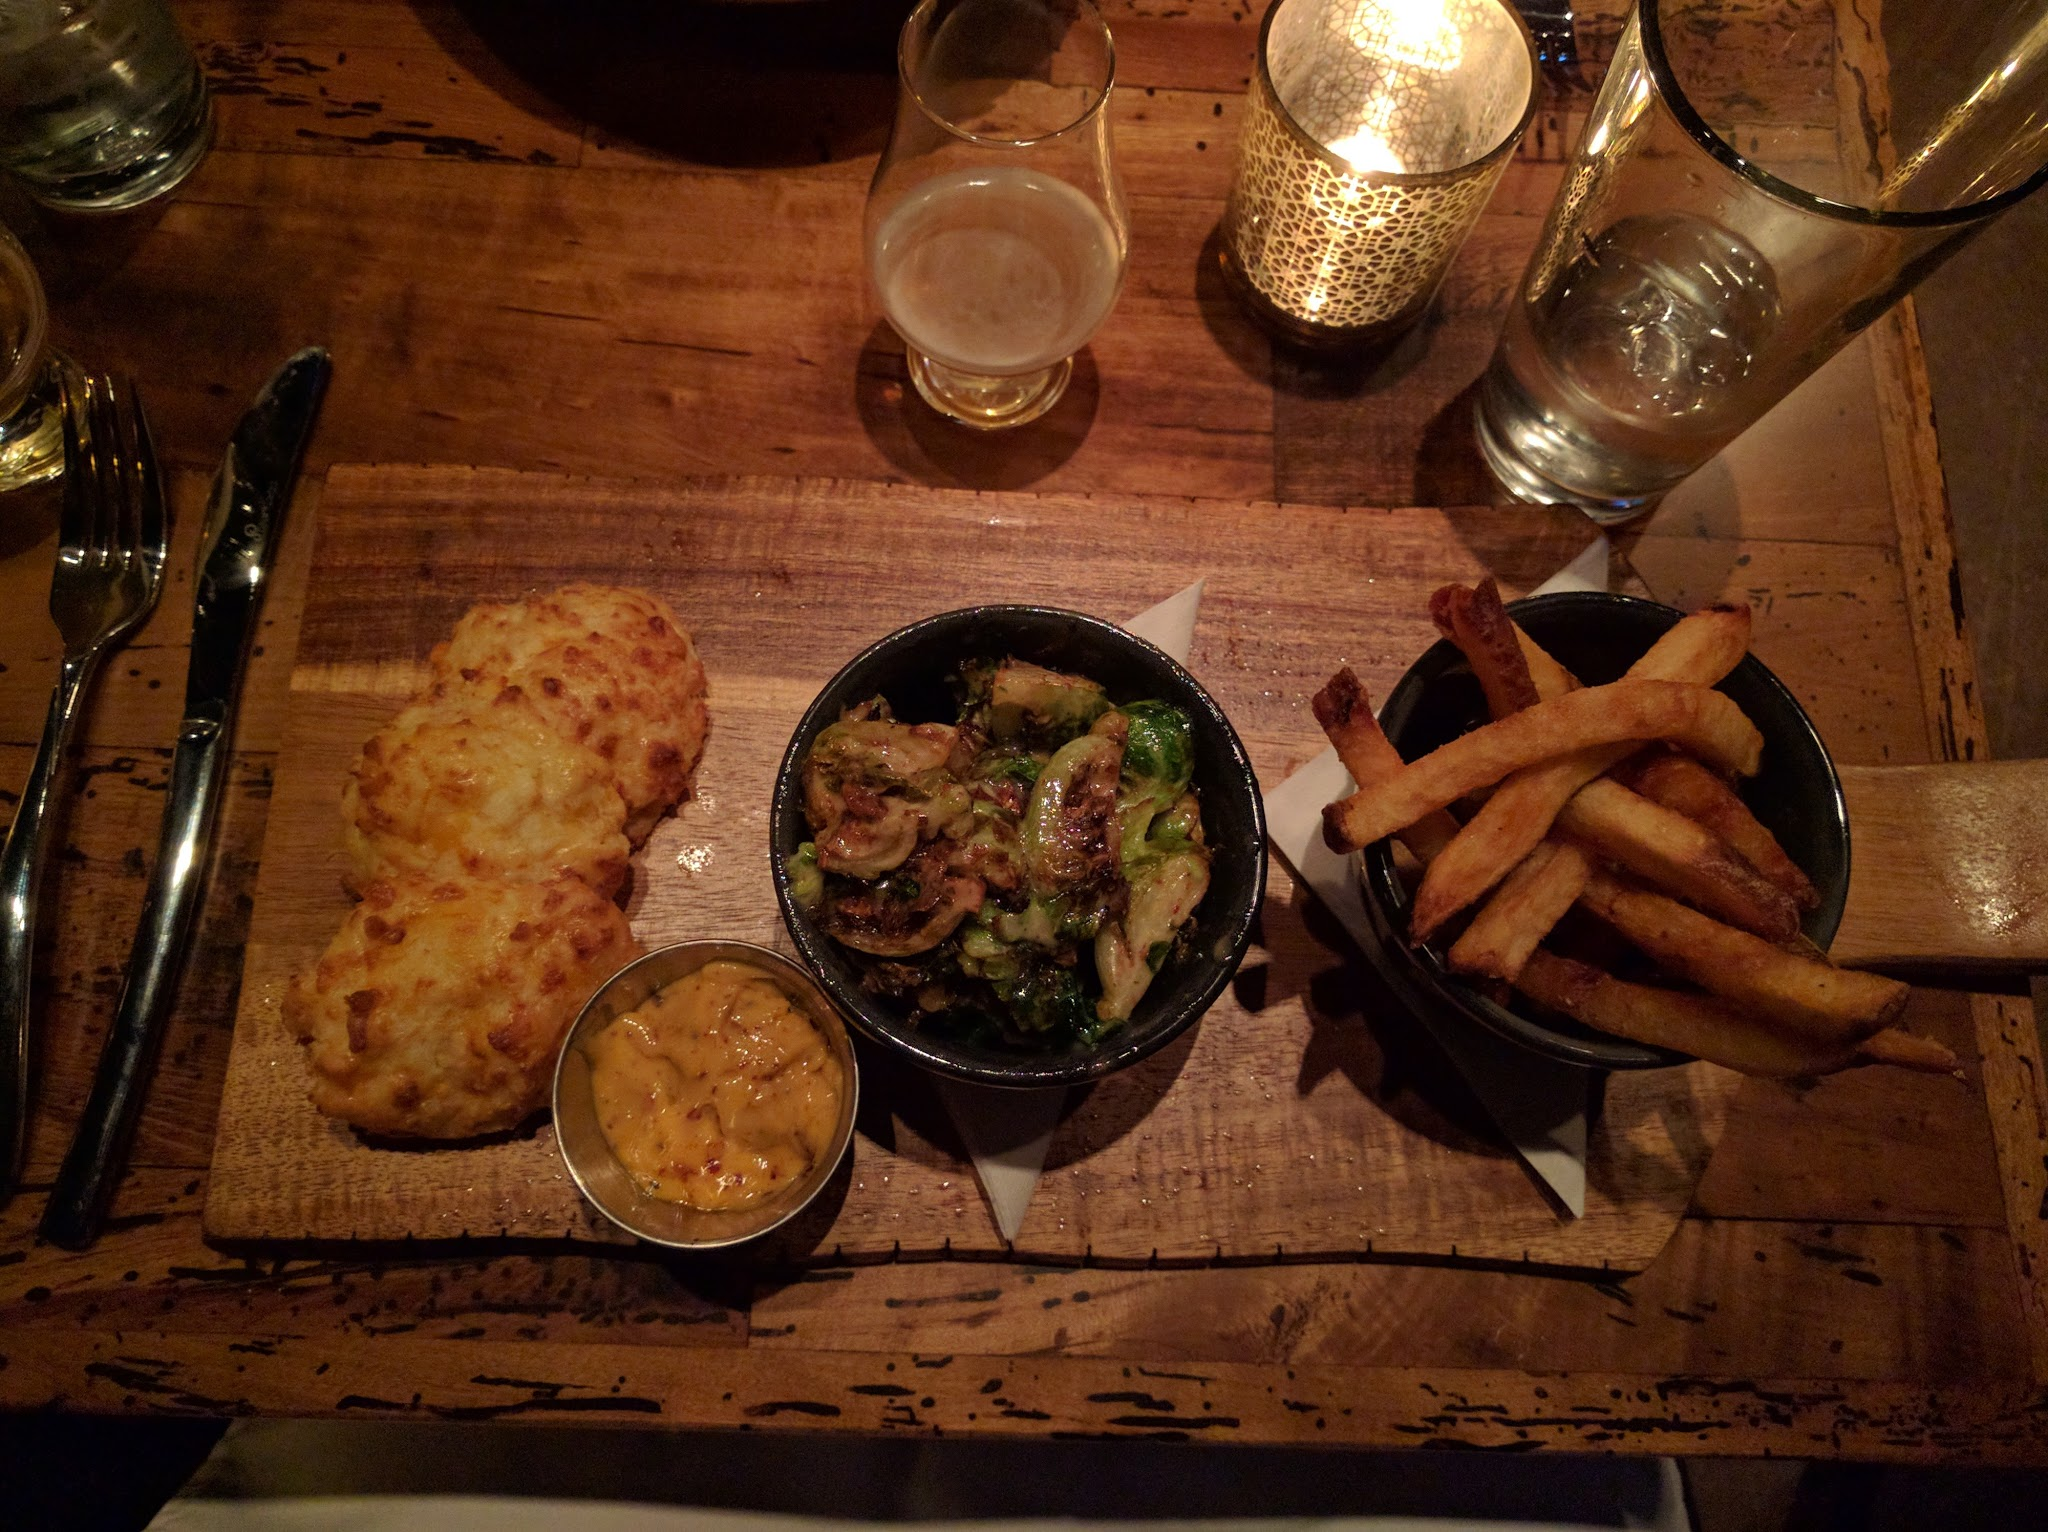 Brussels Sprouts meal from Rockmill Tavern